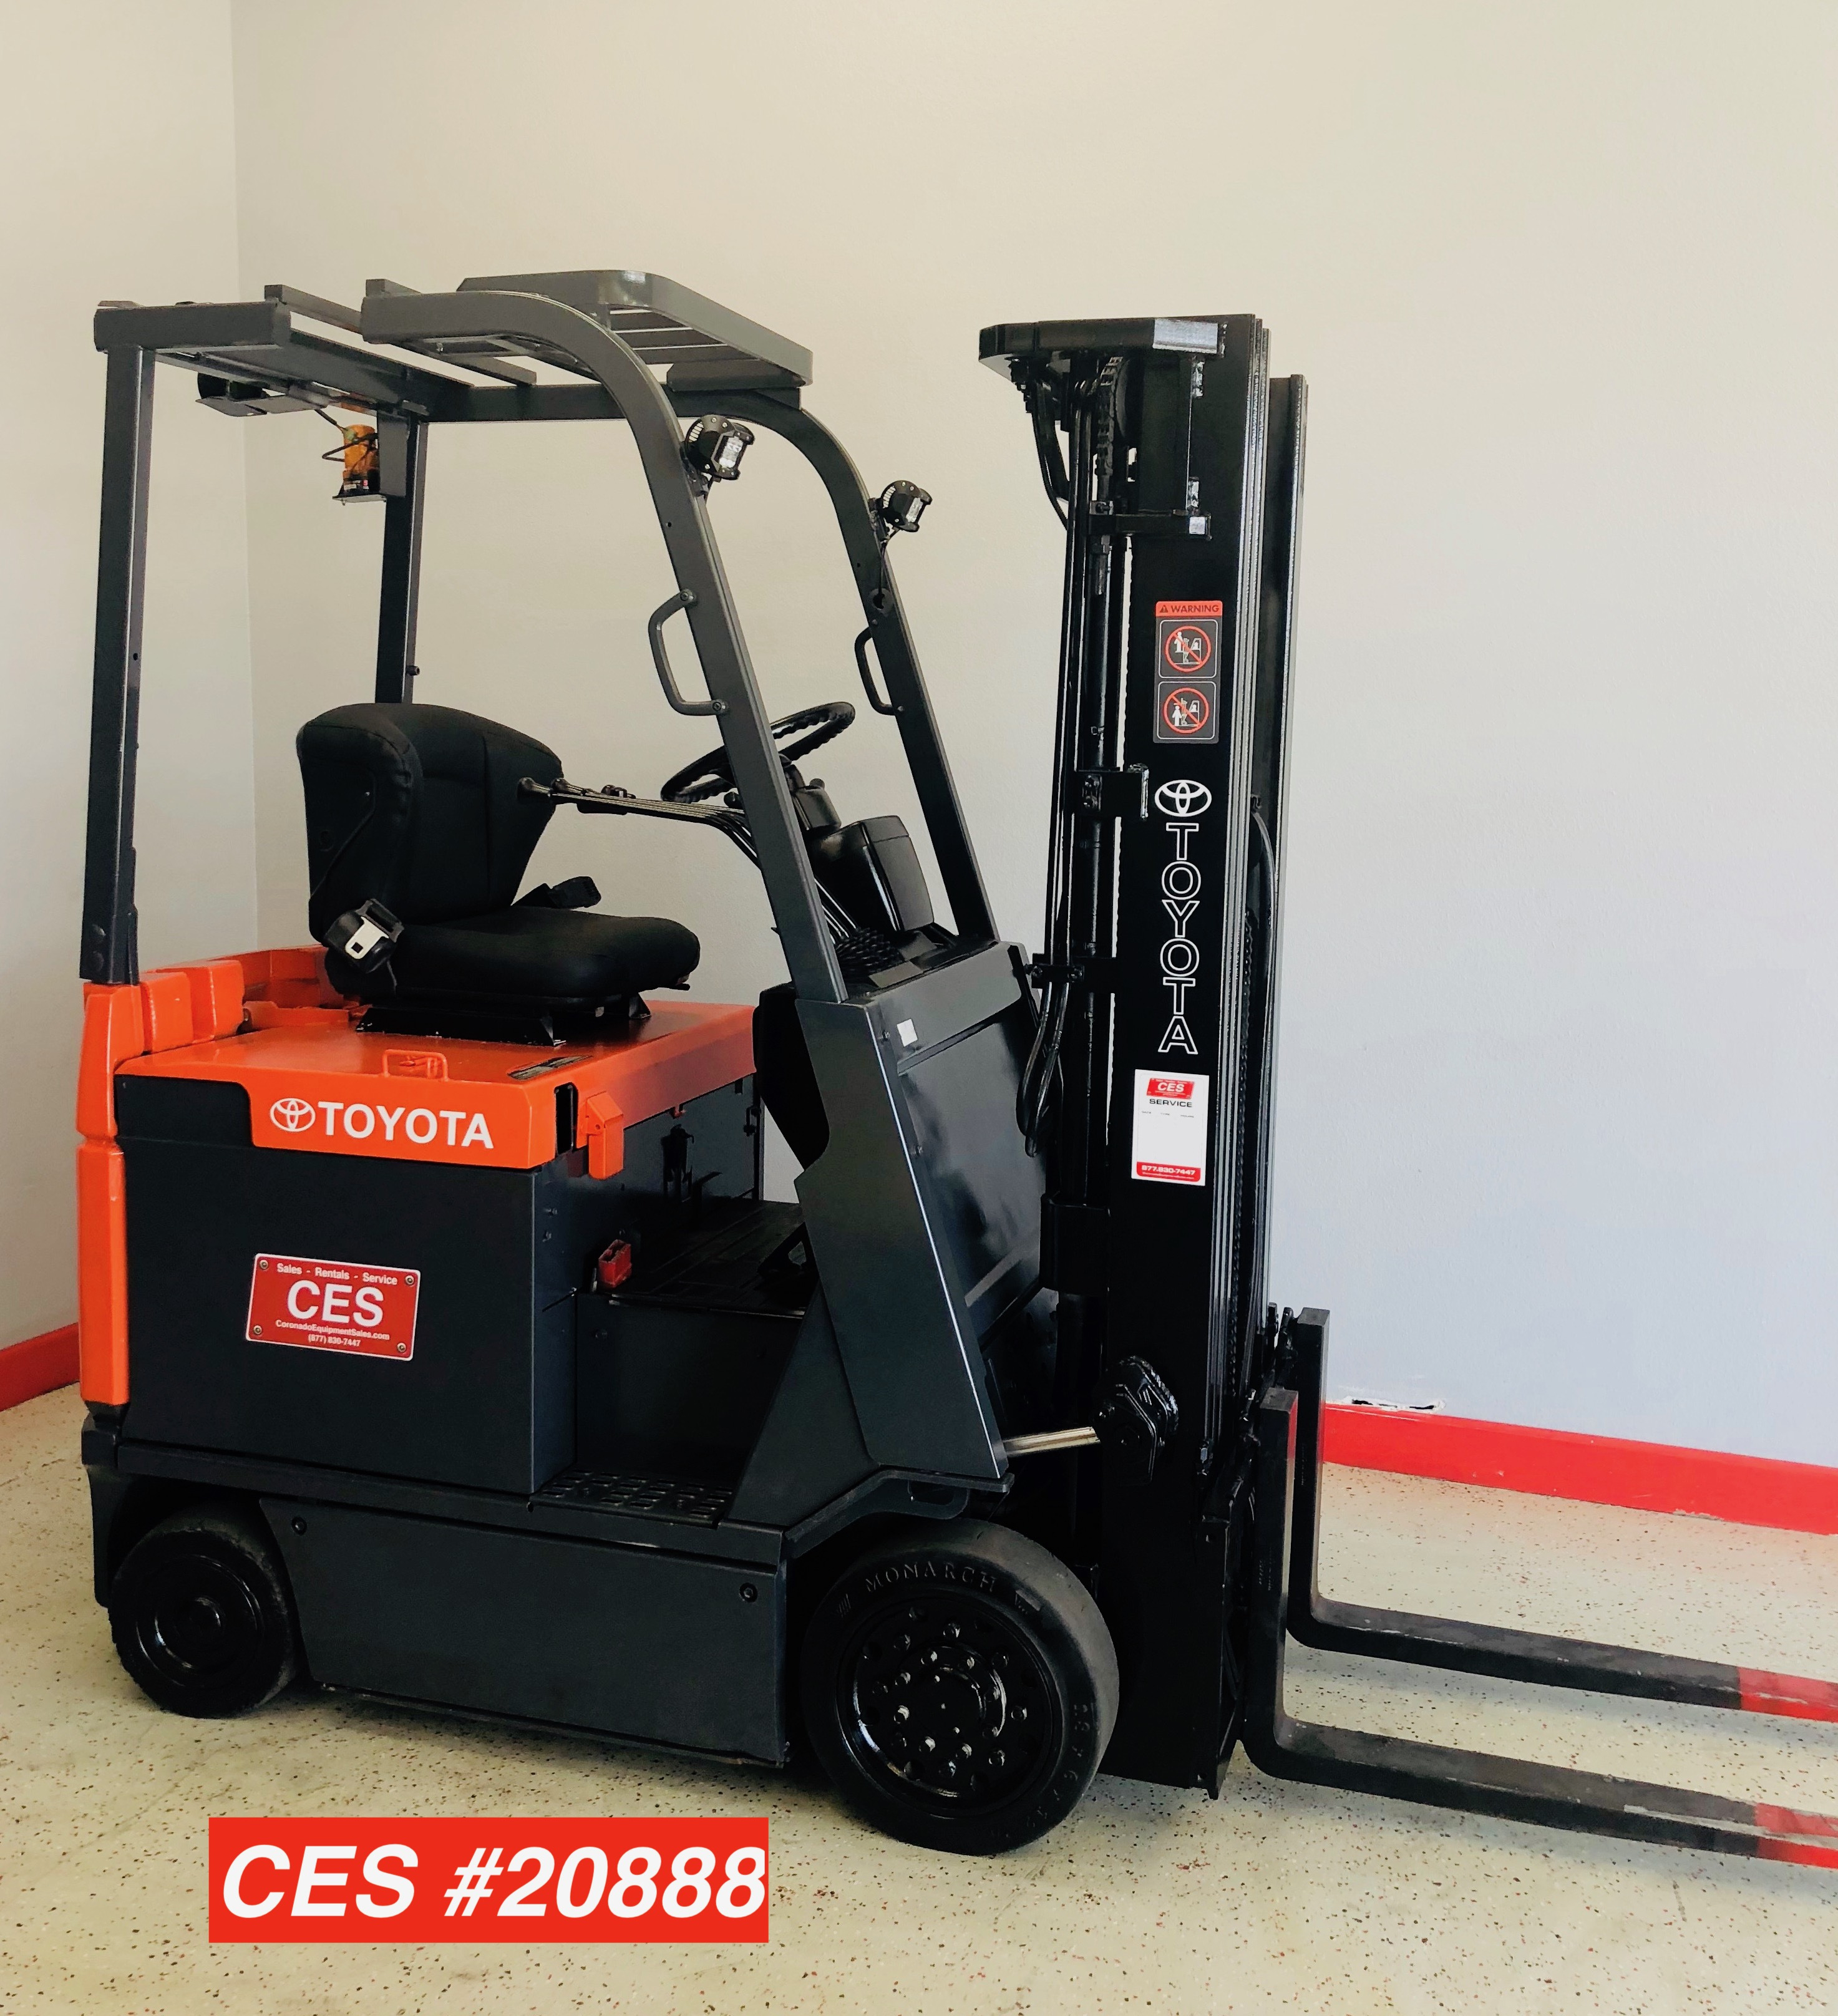 Toyota Forklift For Sale: Ces #20888 Toyota 7Fbcu18 Electric